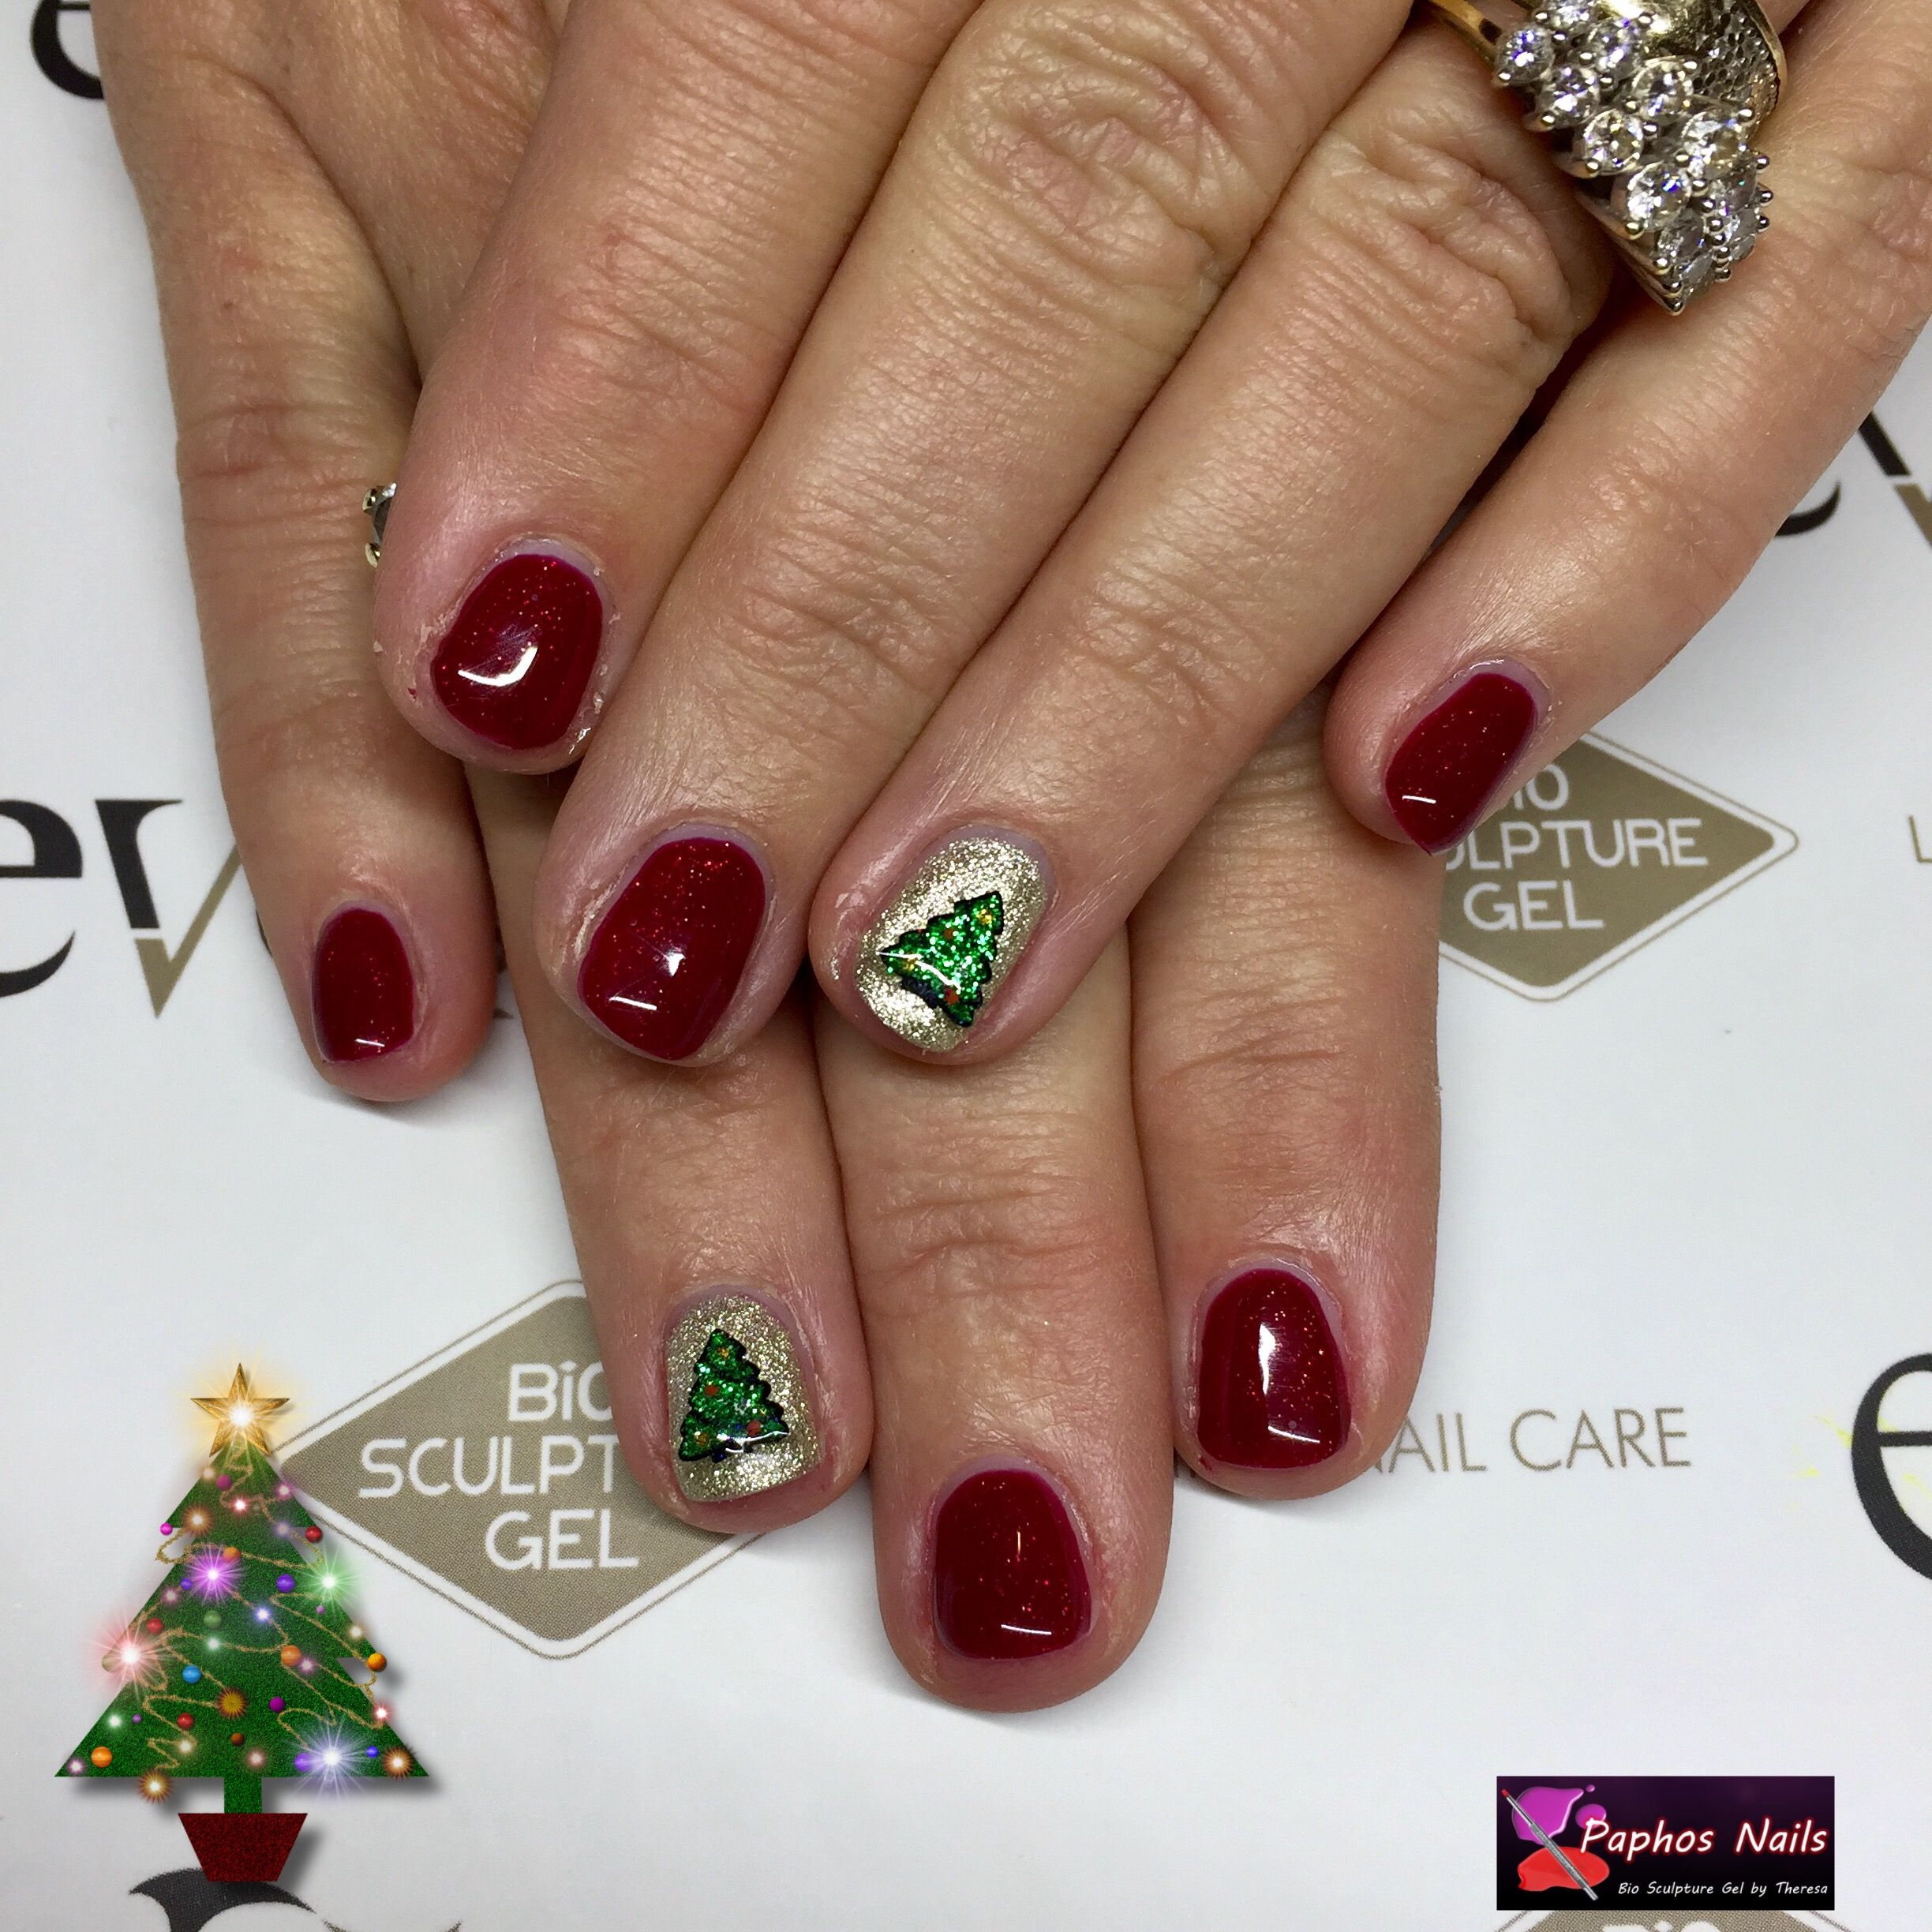 #christmastree #nails #moulinrouge #biosculpturegel and #crystal #evobybiosculpture #paphosnails #biosculpturebytheresa #kissonerganails